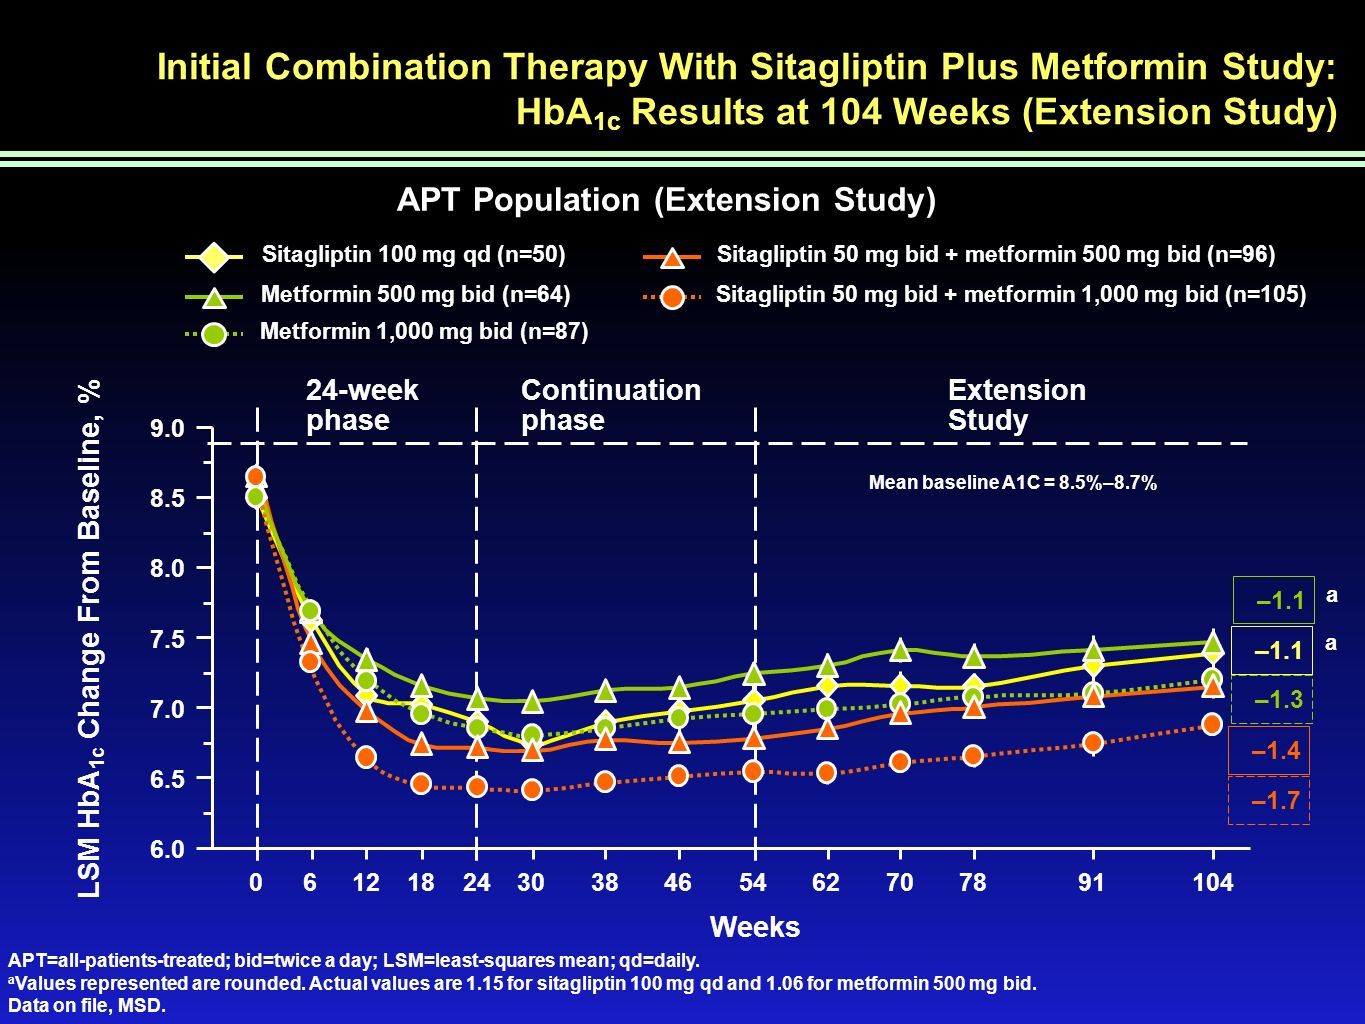 Initial Combination Therapy With Sitagliptin Plus Metformin Study: HbA 1c Results at 104 Weeks (Extension Study) Extension Study 24-week phase Continu